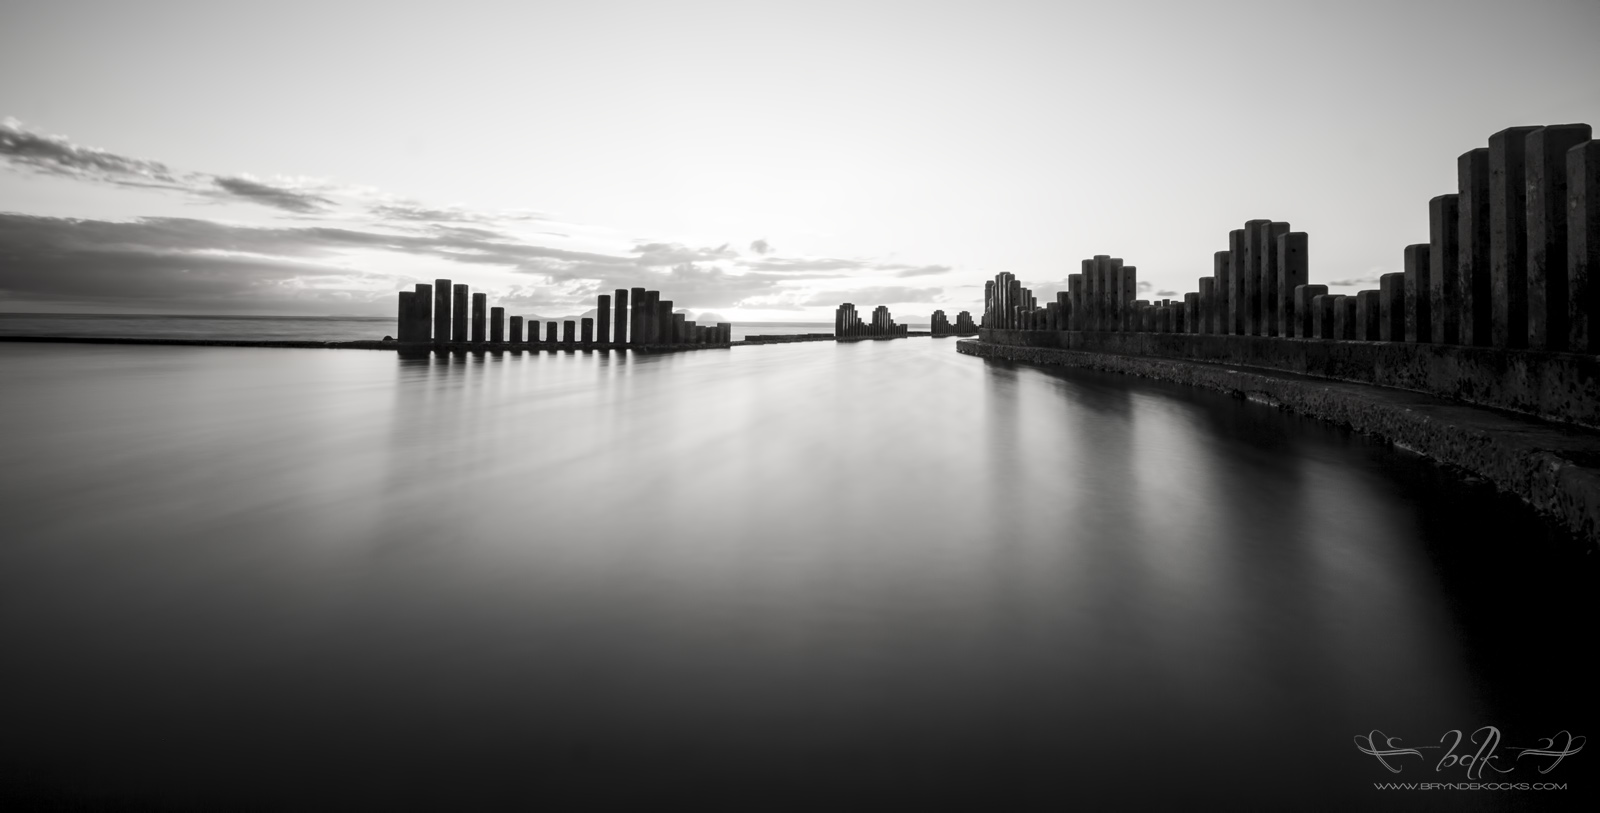 The first attempt with the hoya nd400 nd filter